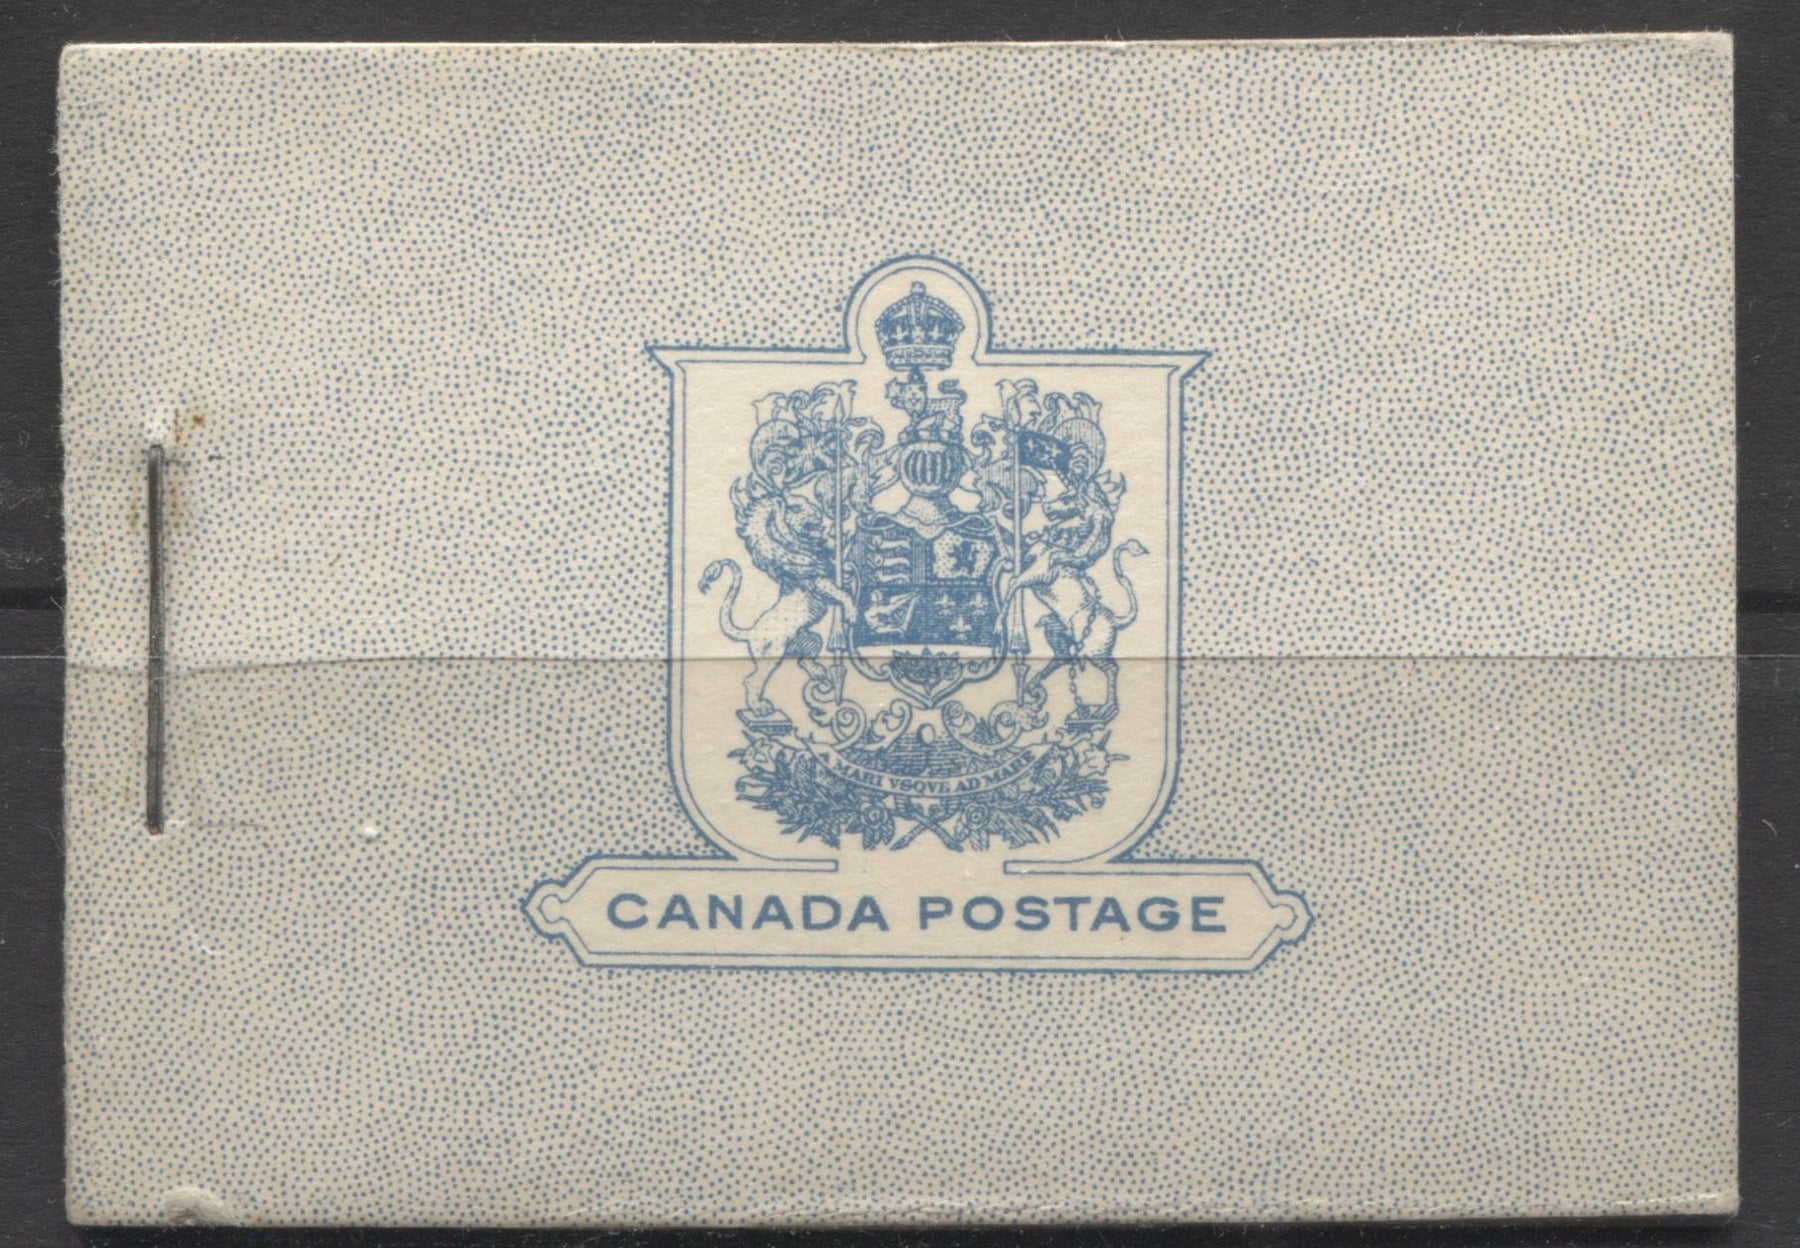 Canada #BK27 1935-1937 Dated Die Issue , Complete 25¢ English Booklet, 16-17 mm Staple, Vertical Wove Paper Brixton Chrome F-65